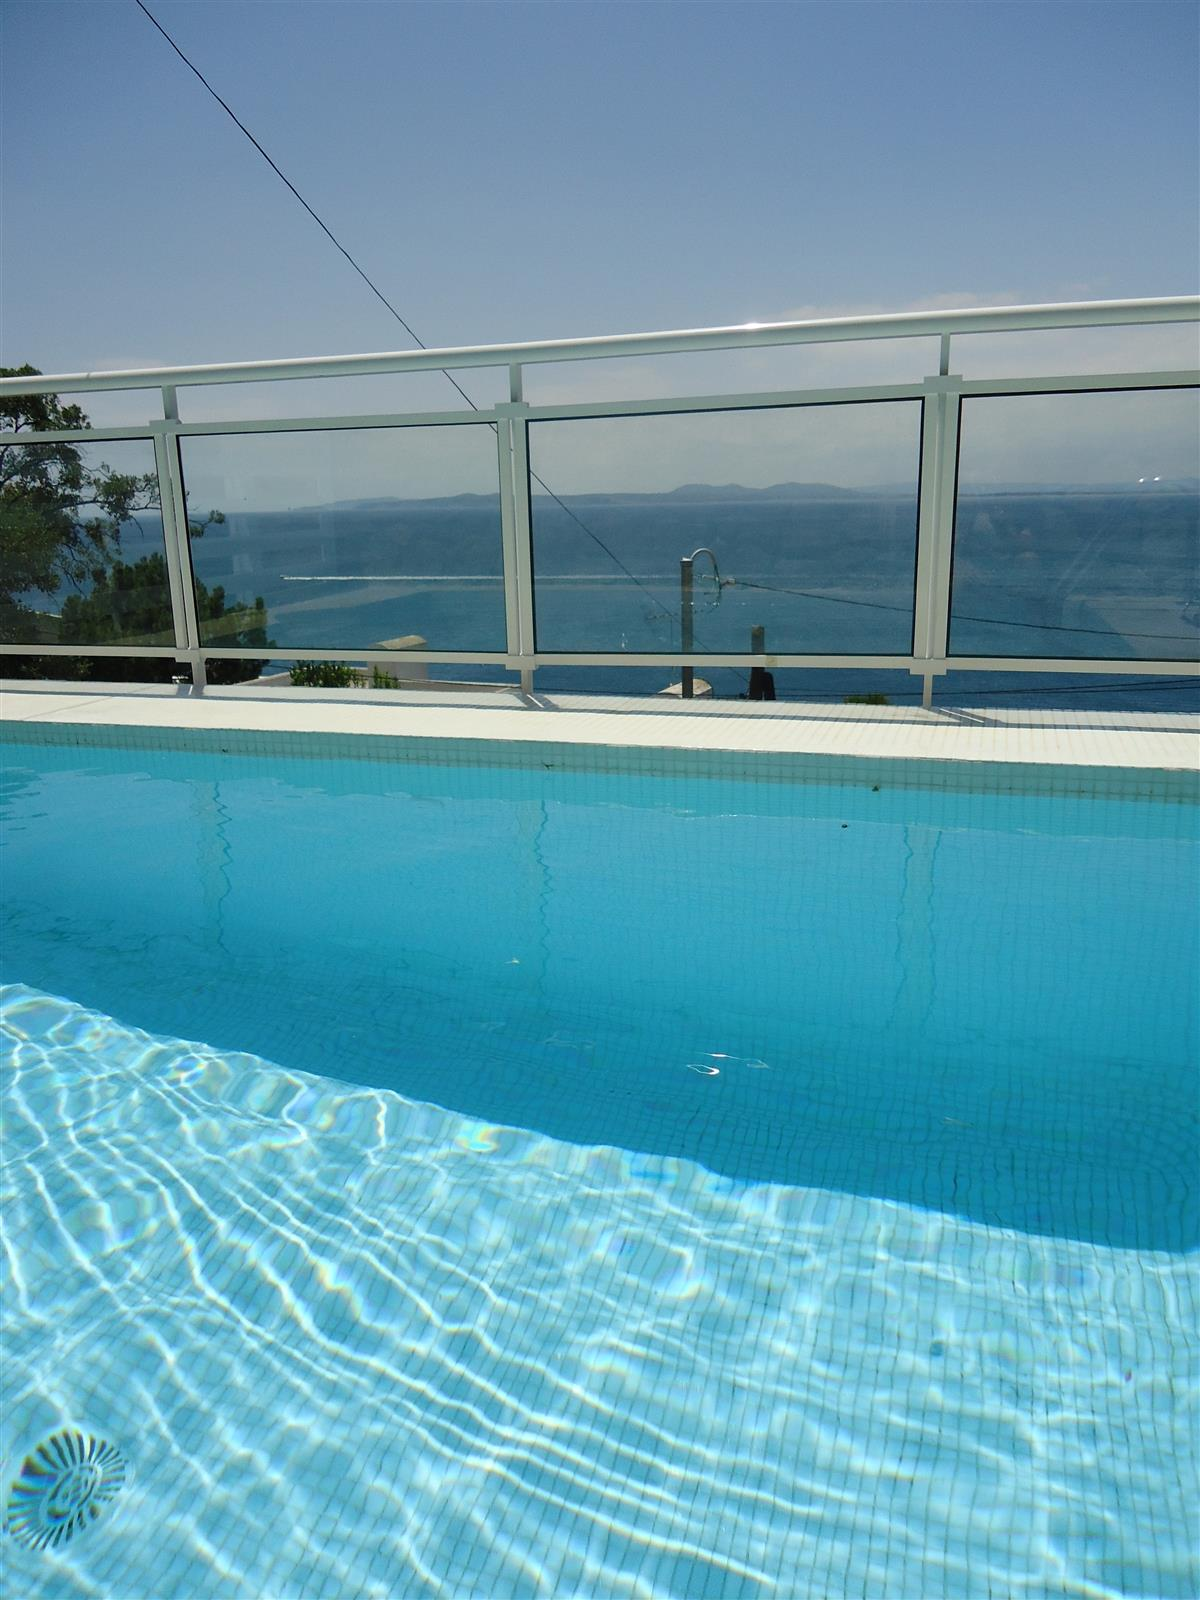 New infinity pool. Stunning views and hear the sea from the pool!